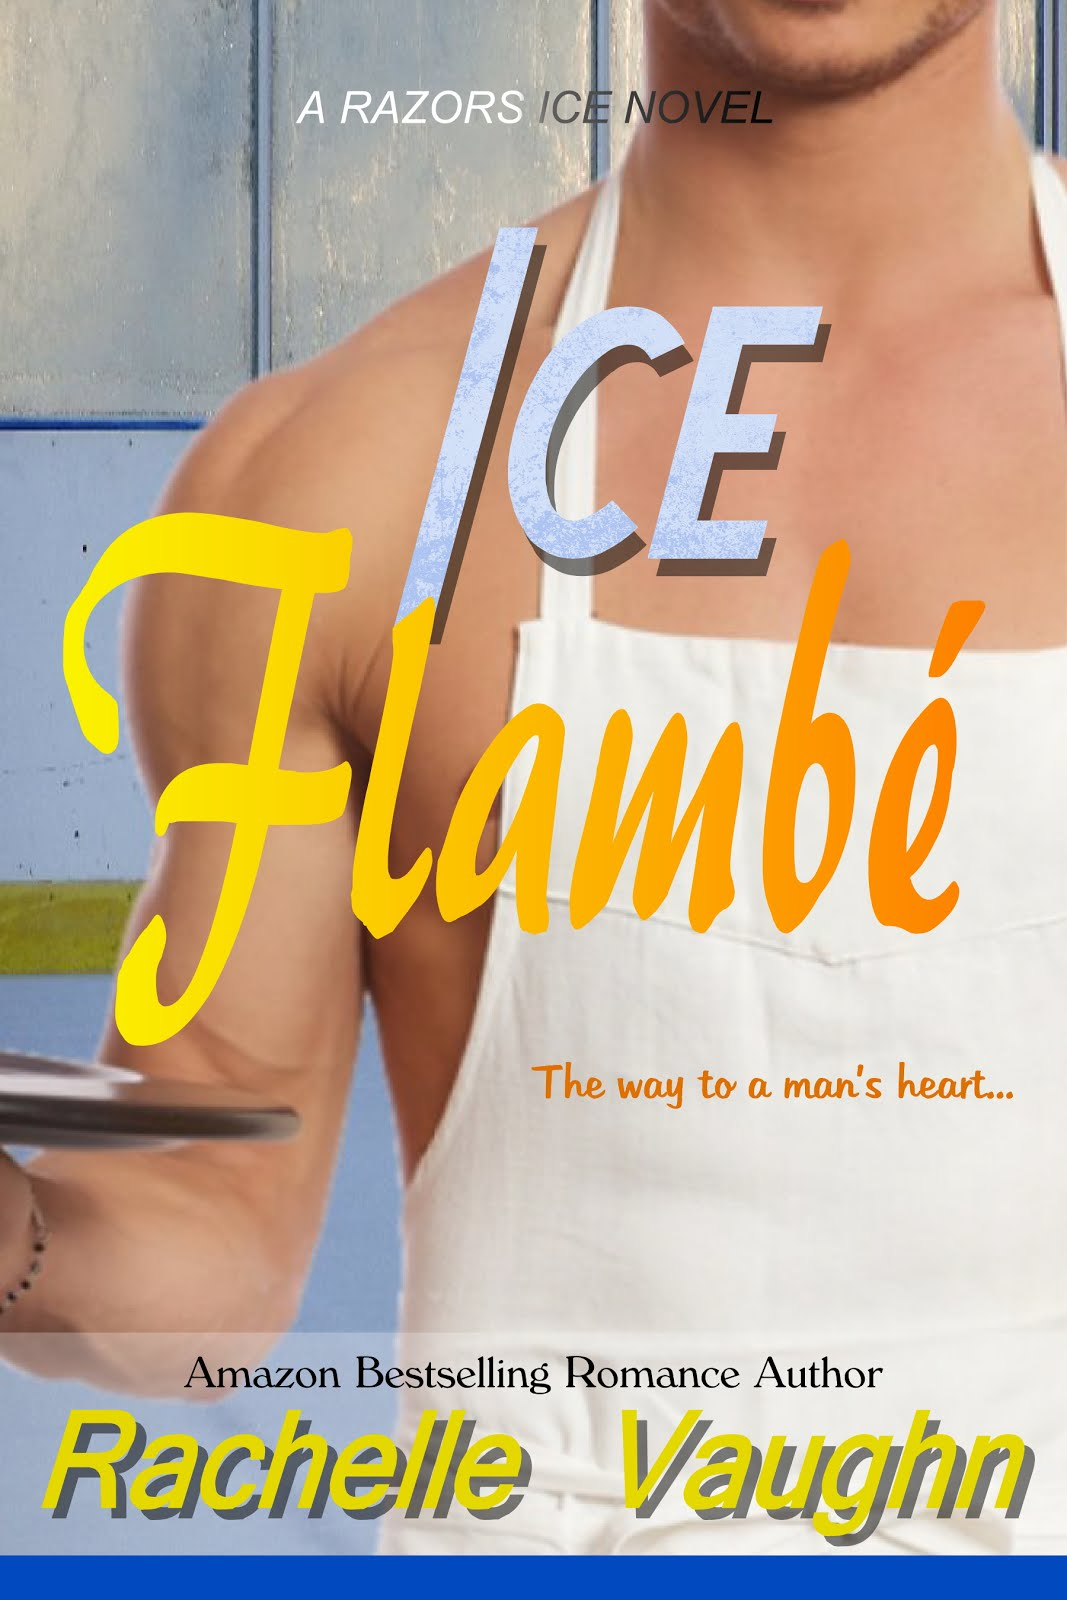 Ice Flambé